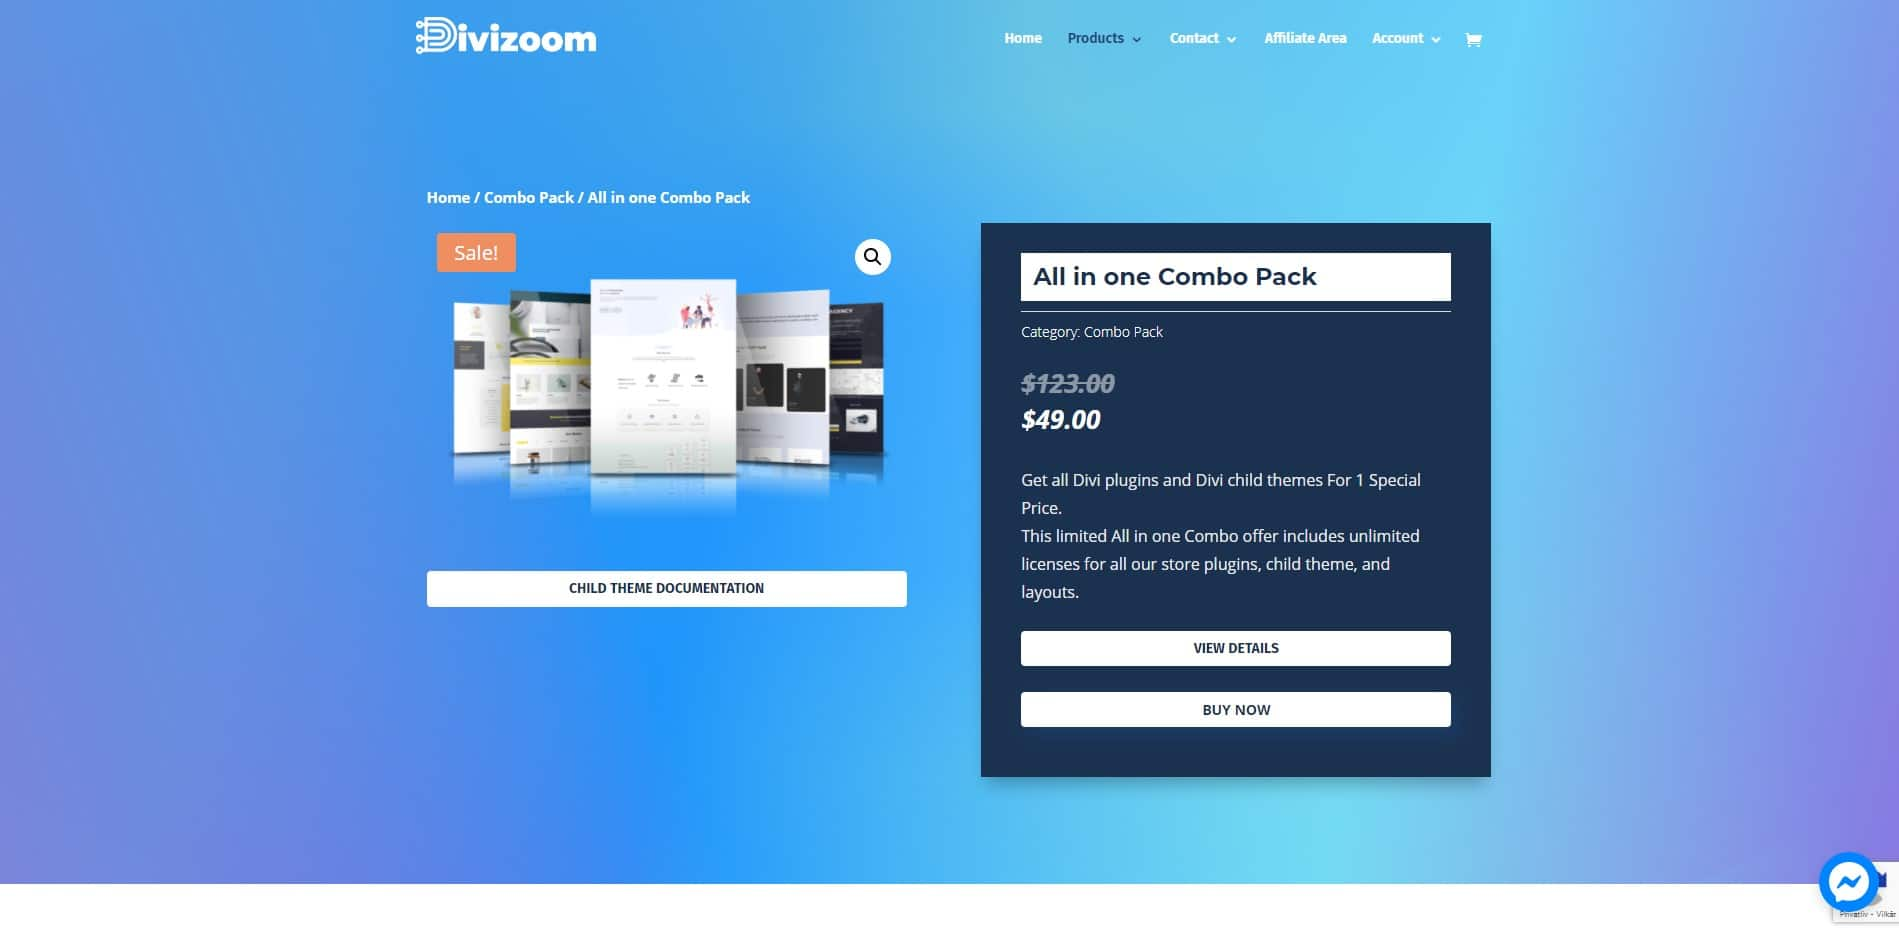 Divizoom All in one combo pack